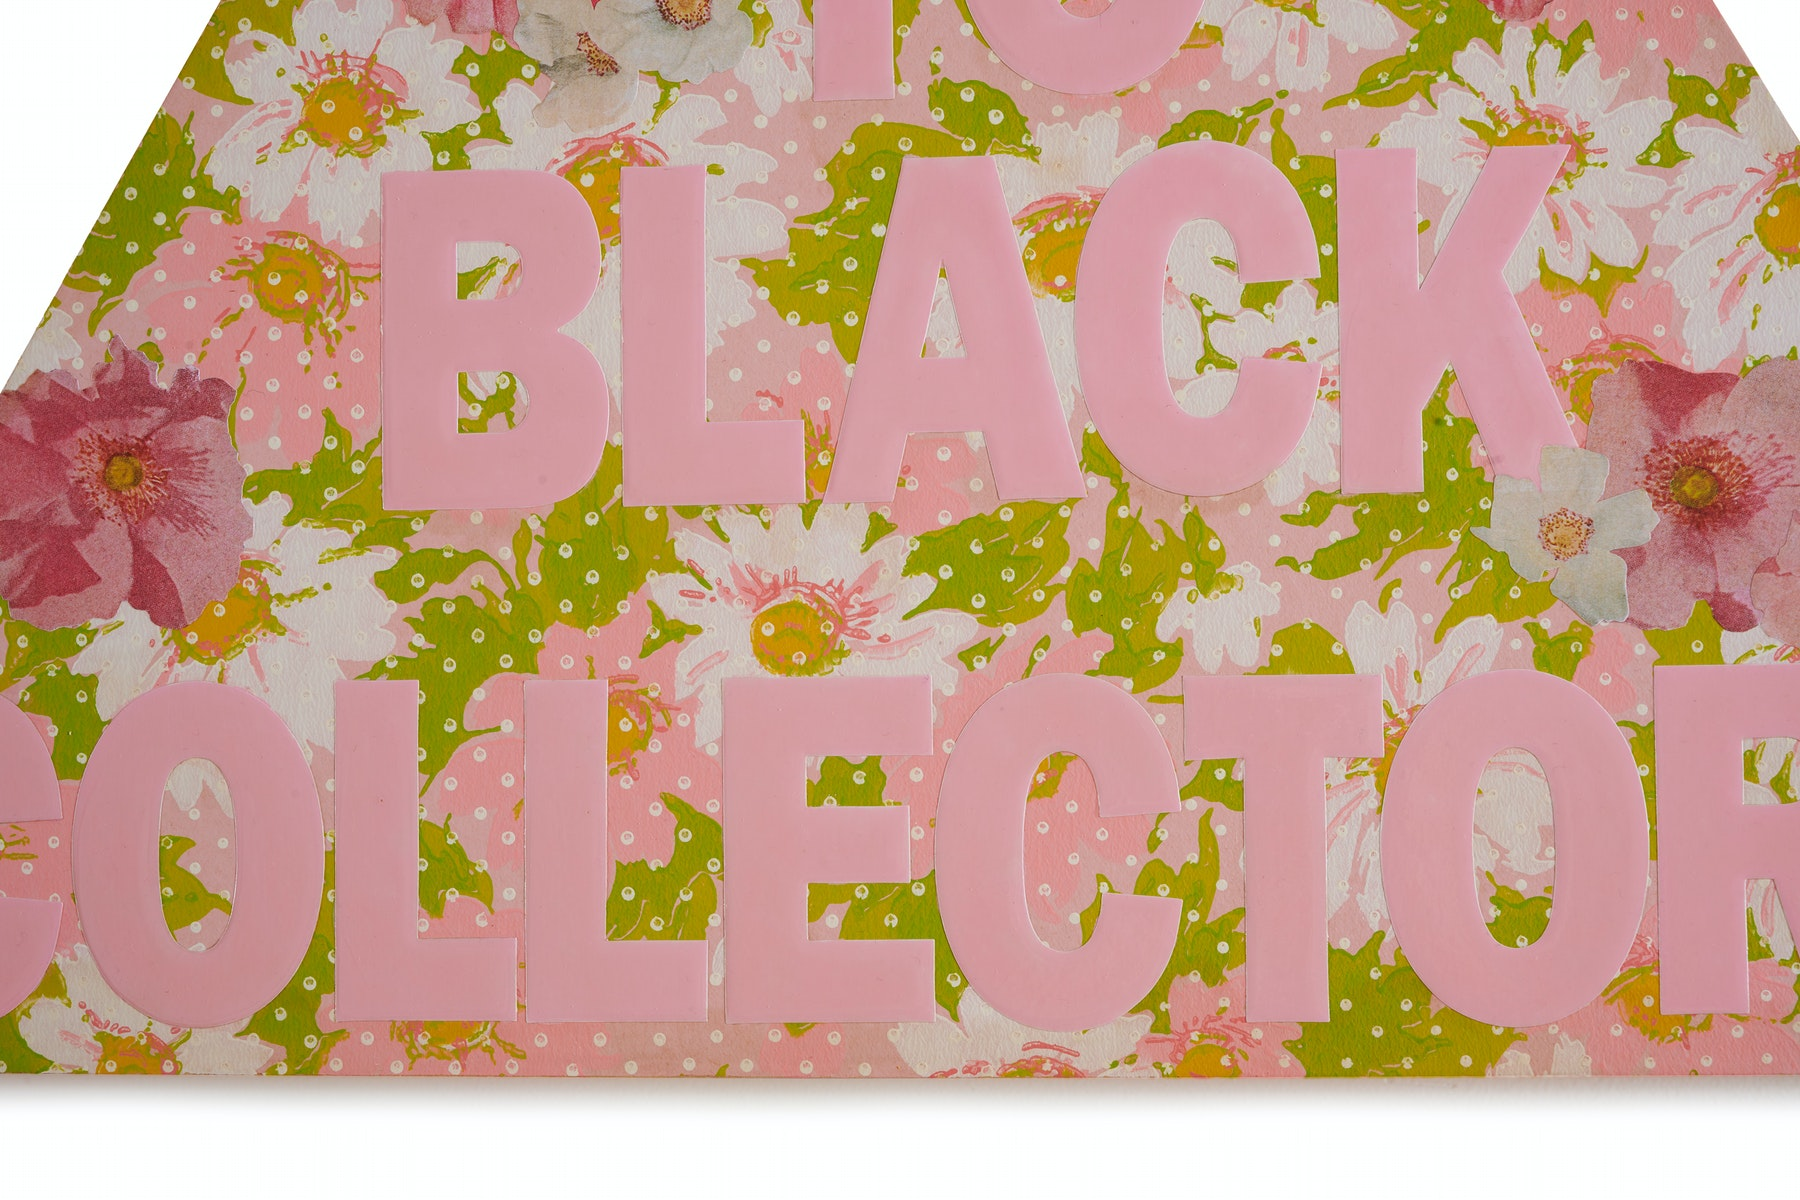 """Genevieve Gaignard """"Sell To Black Collectors (Spring),"""" 2021 Mixed media on panel 20 ¹⁄₂"""" x 24"""" x 1"""" [HxWxD] (52.07 x 60.96 x 2.54 cm) Inventory #GEN349 Courtesy of the artist and Vielmetter Los Angeles Photo credit: Thomas Clark"""